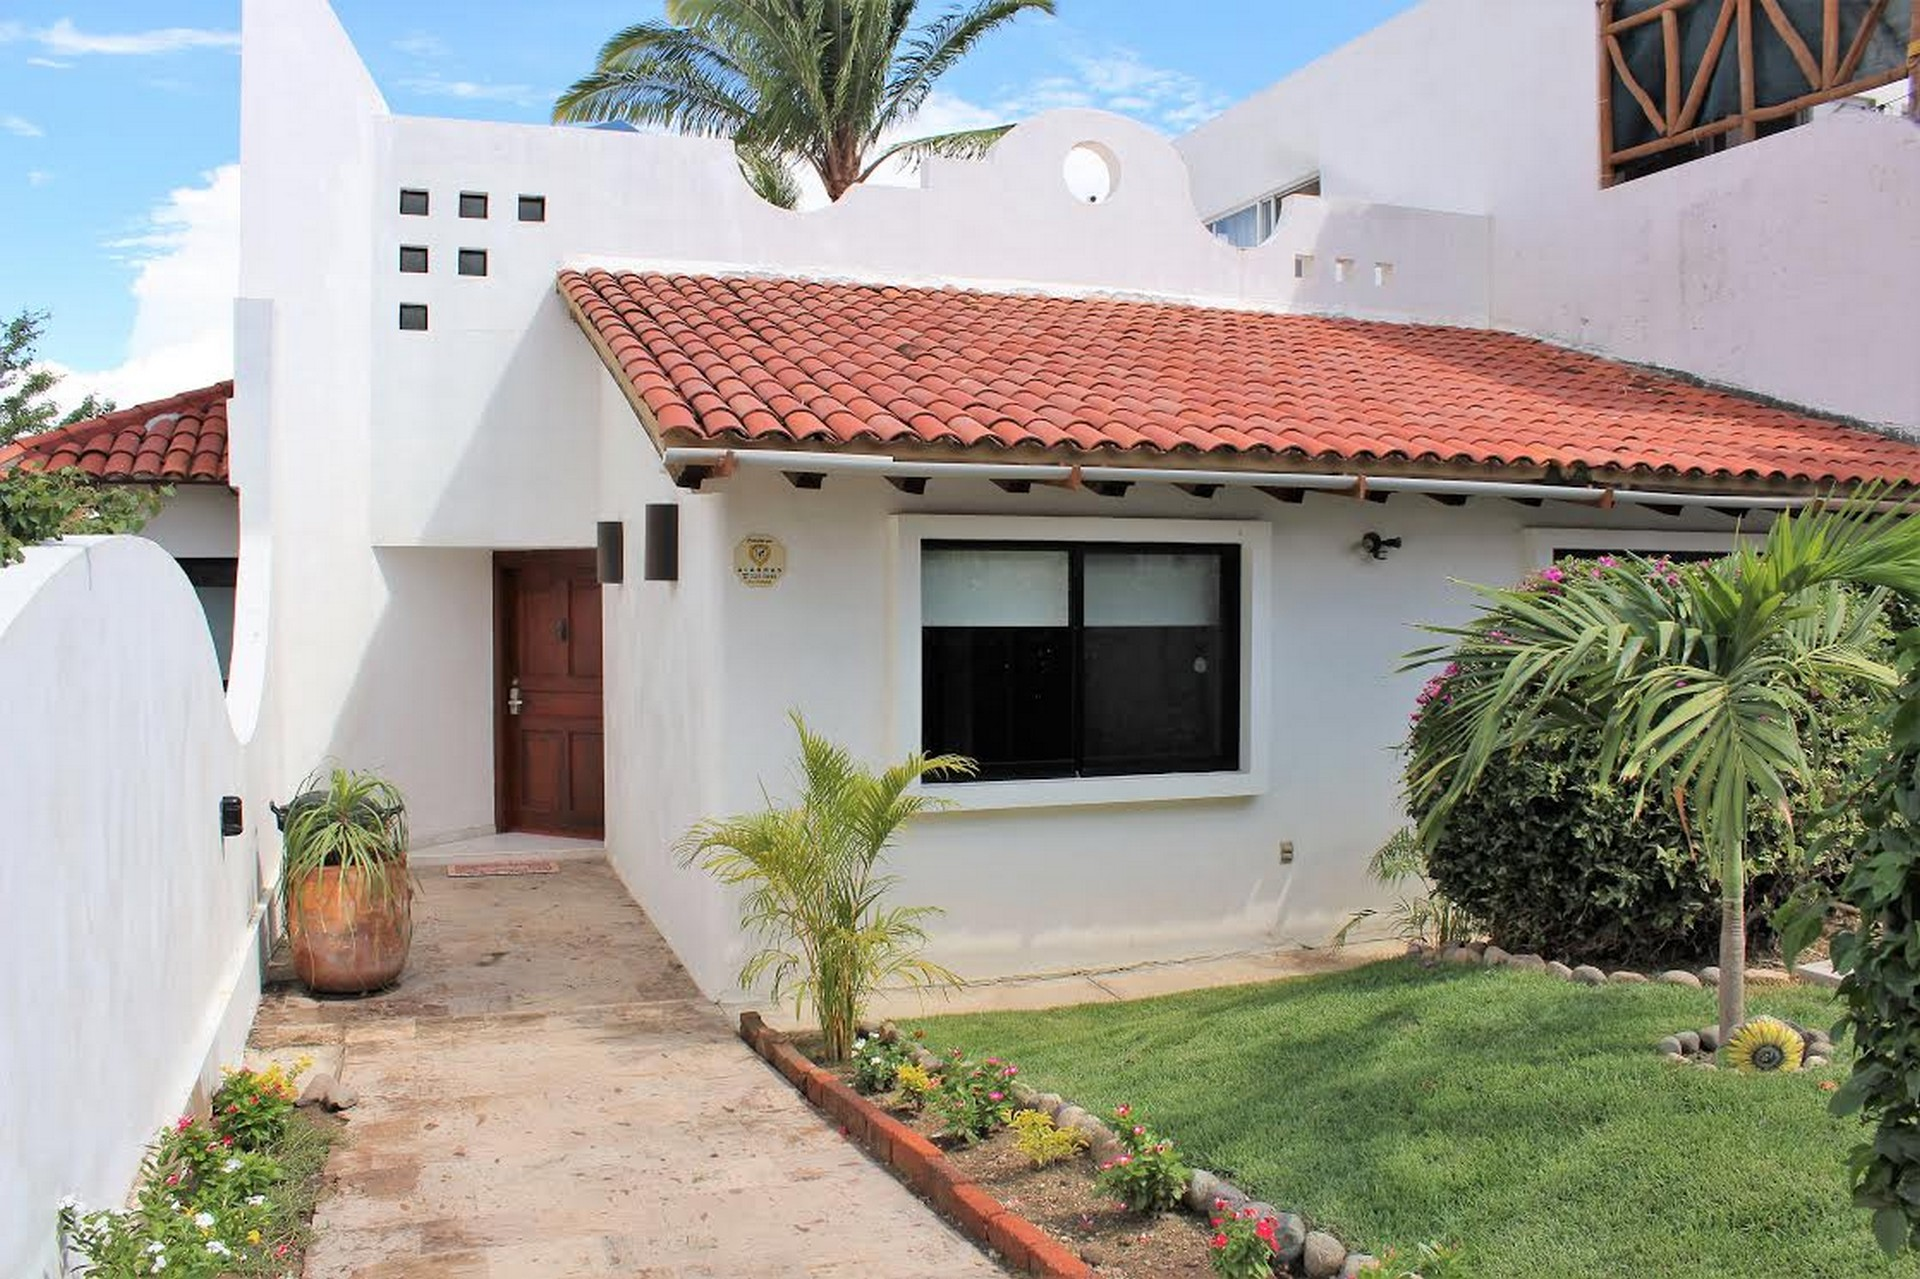 Home Rental Photos Cruz de Huanacaxtle